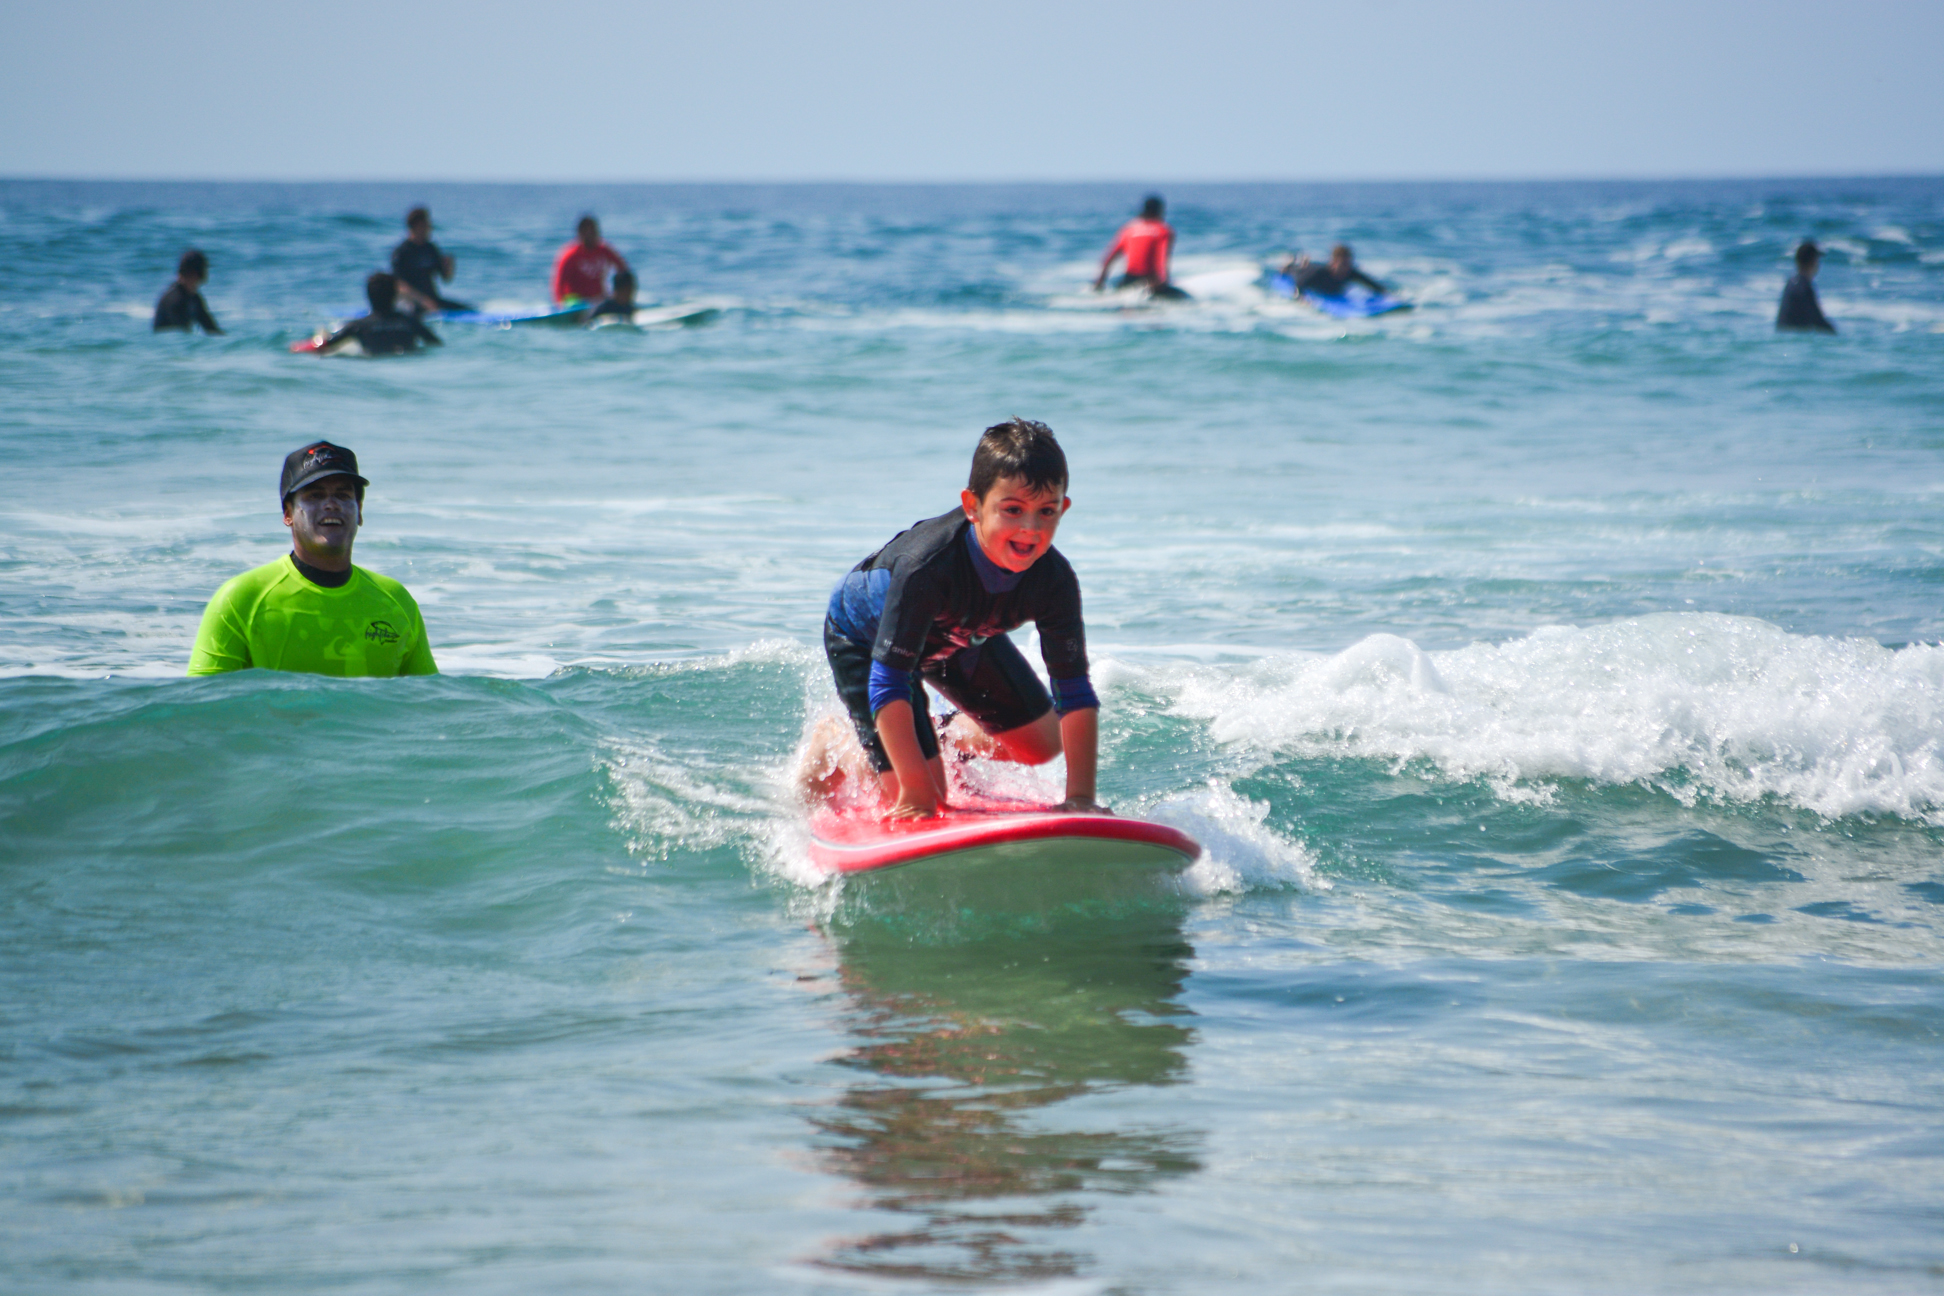 High Tide los Cabos Discount: 10% off Surfing